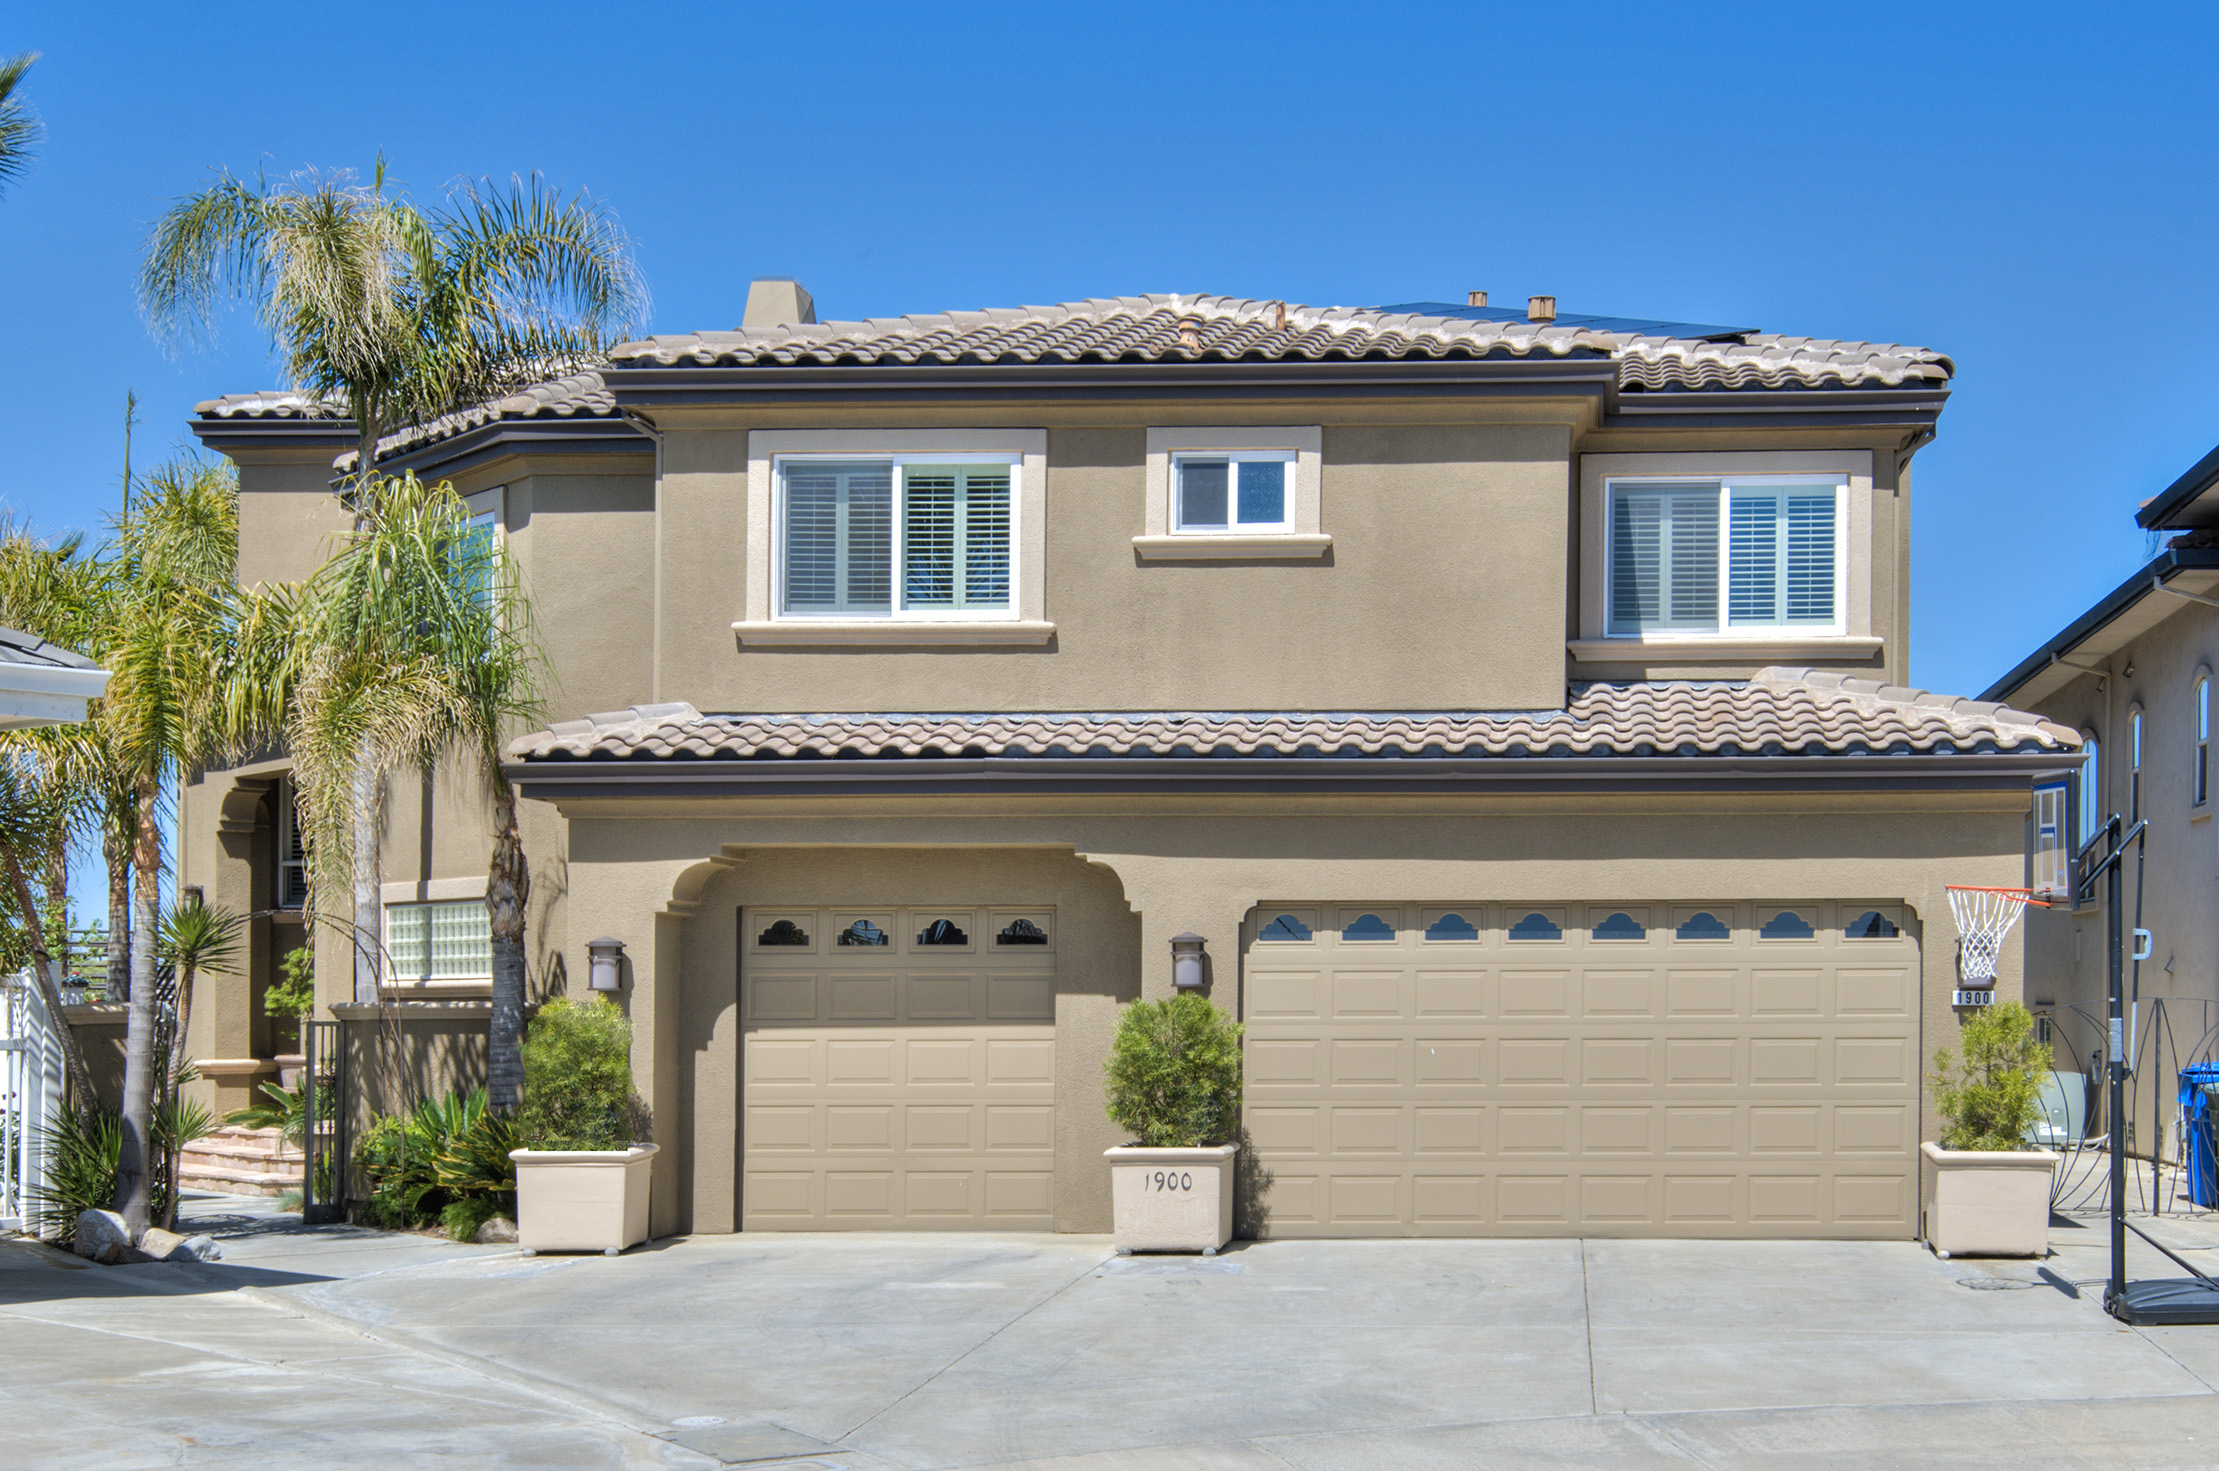 Beautiful Home in Discovery Bay, CA located on Windward Point